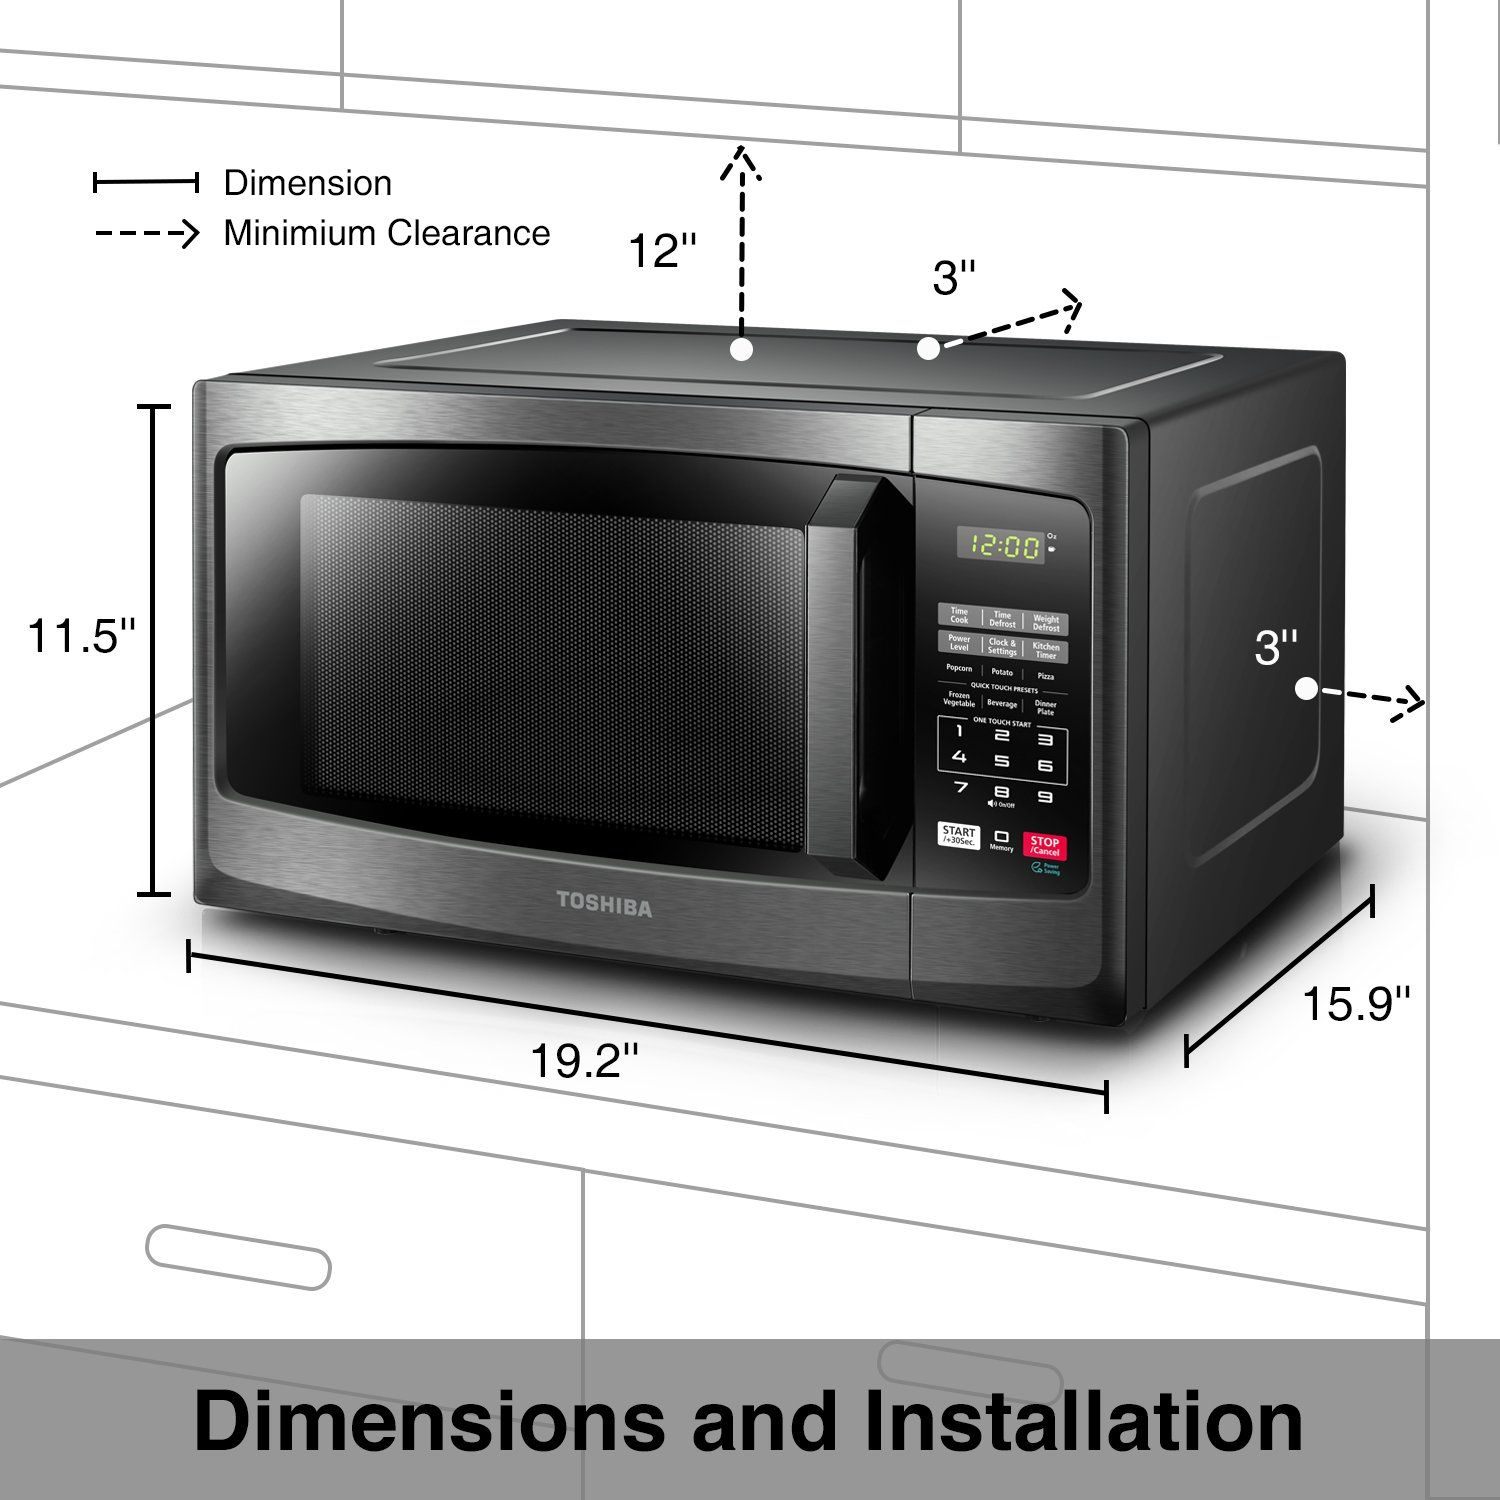 Toshiba Em925a5abs Microwave Oven With Sound On Off Eco Mode And